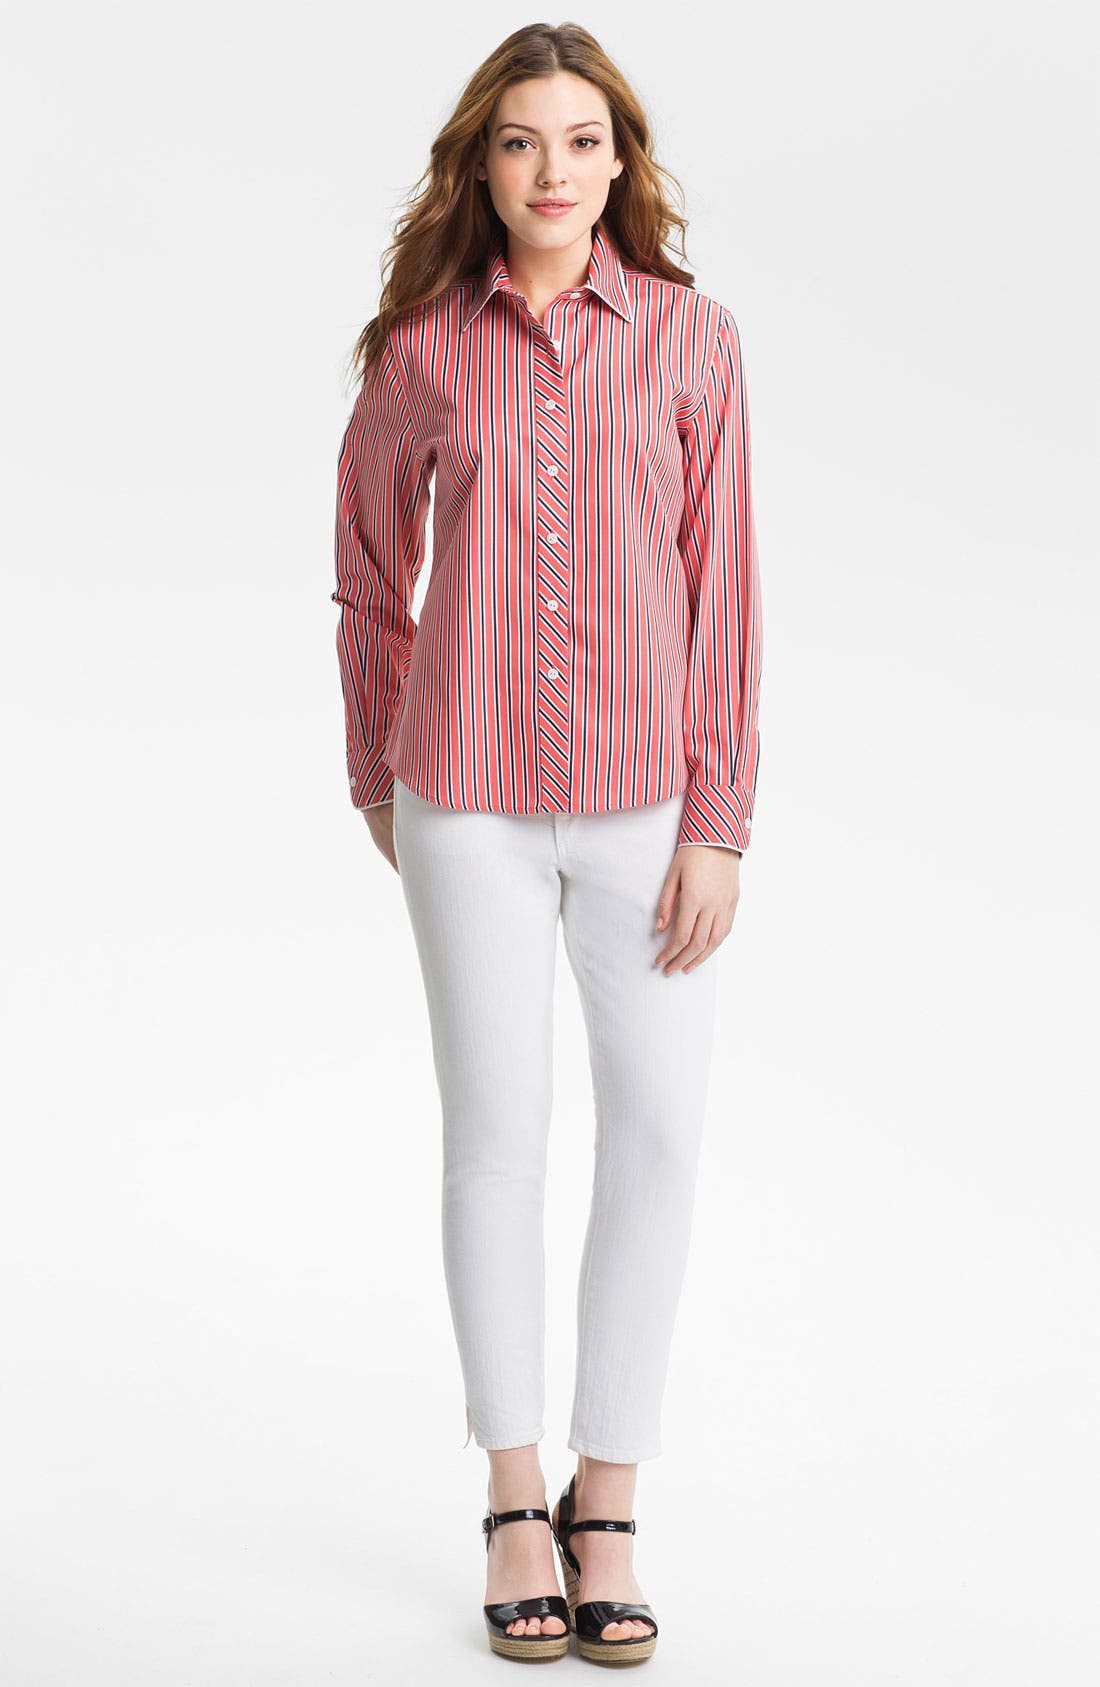 Alternate Image 1 Selected - Foxcroft 'Papaya Stripe' Shirt (Petite)